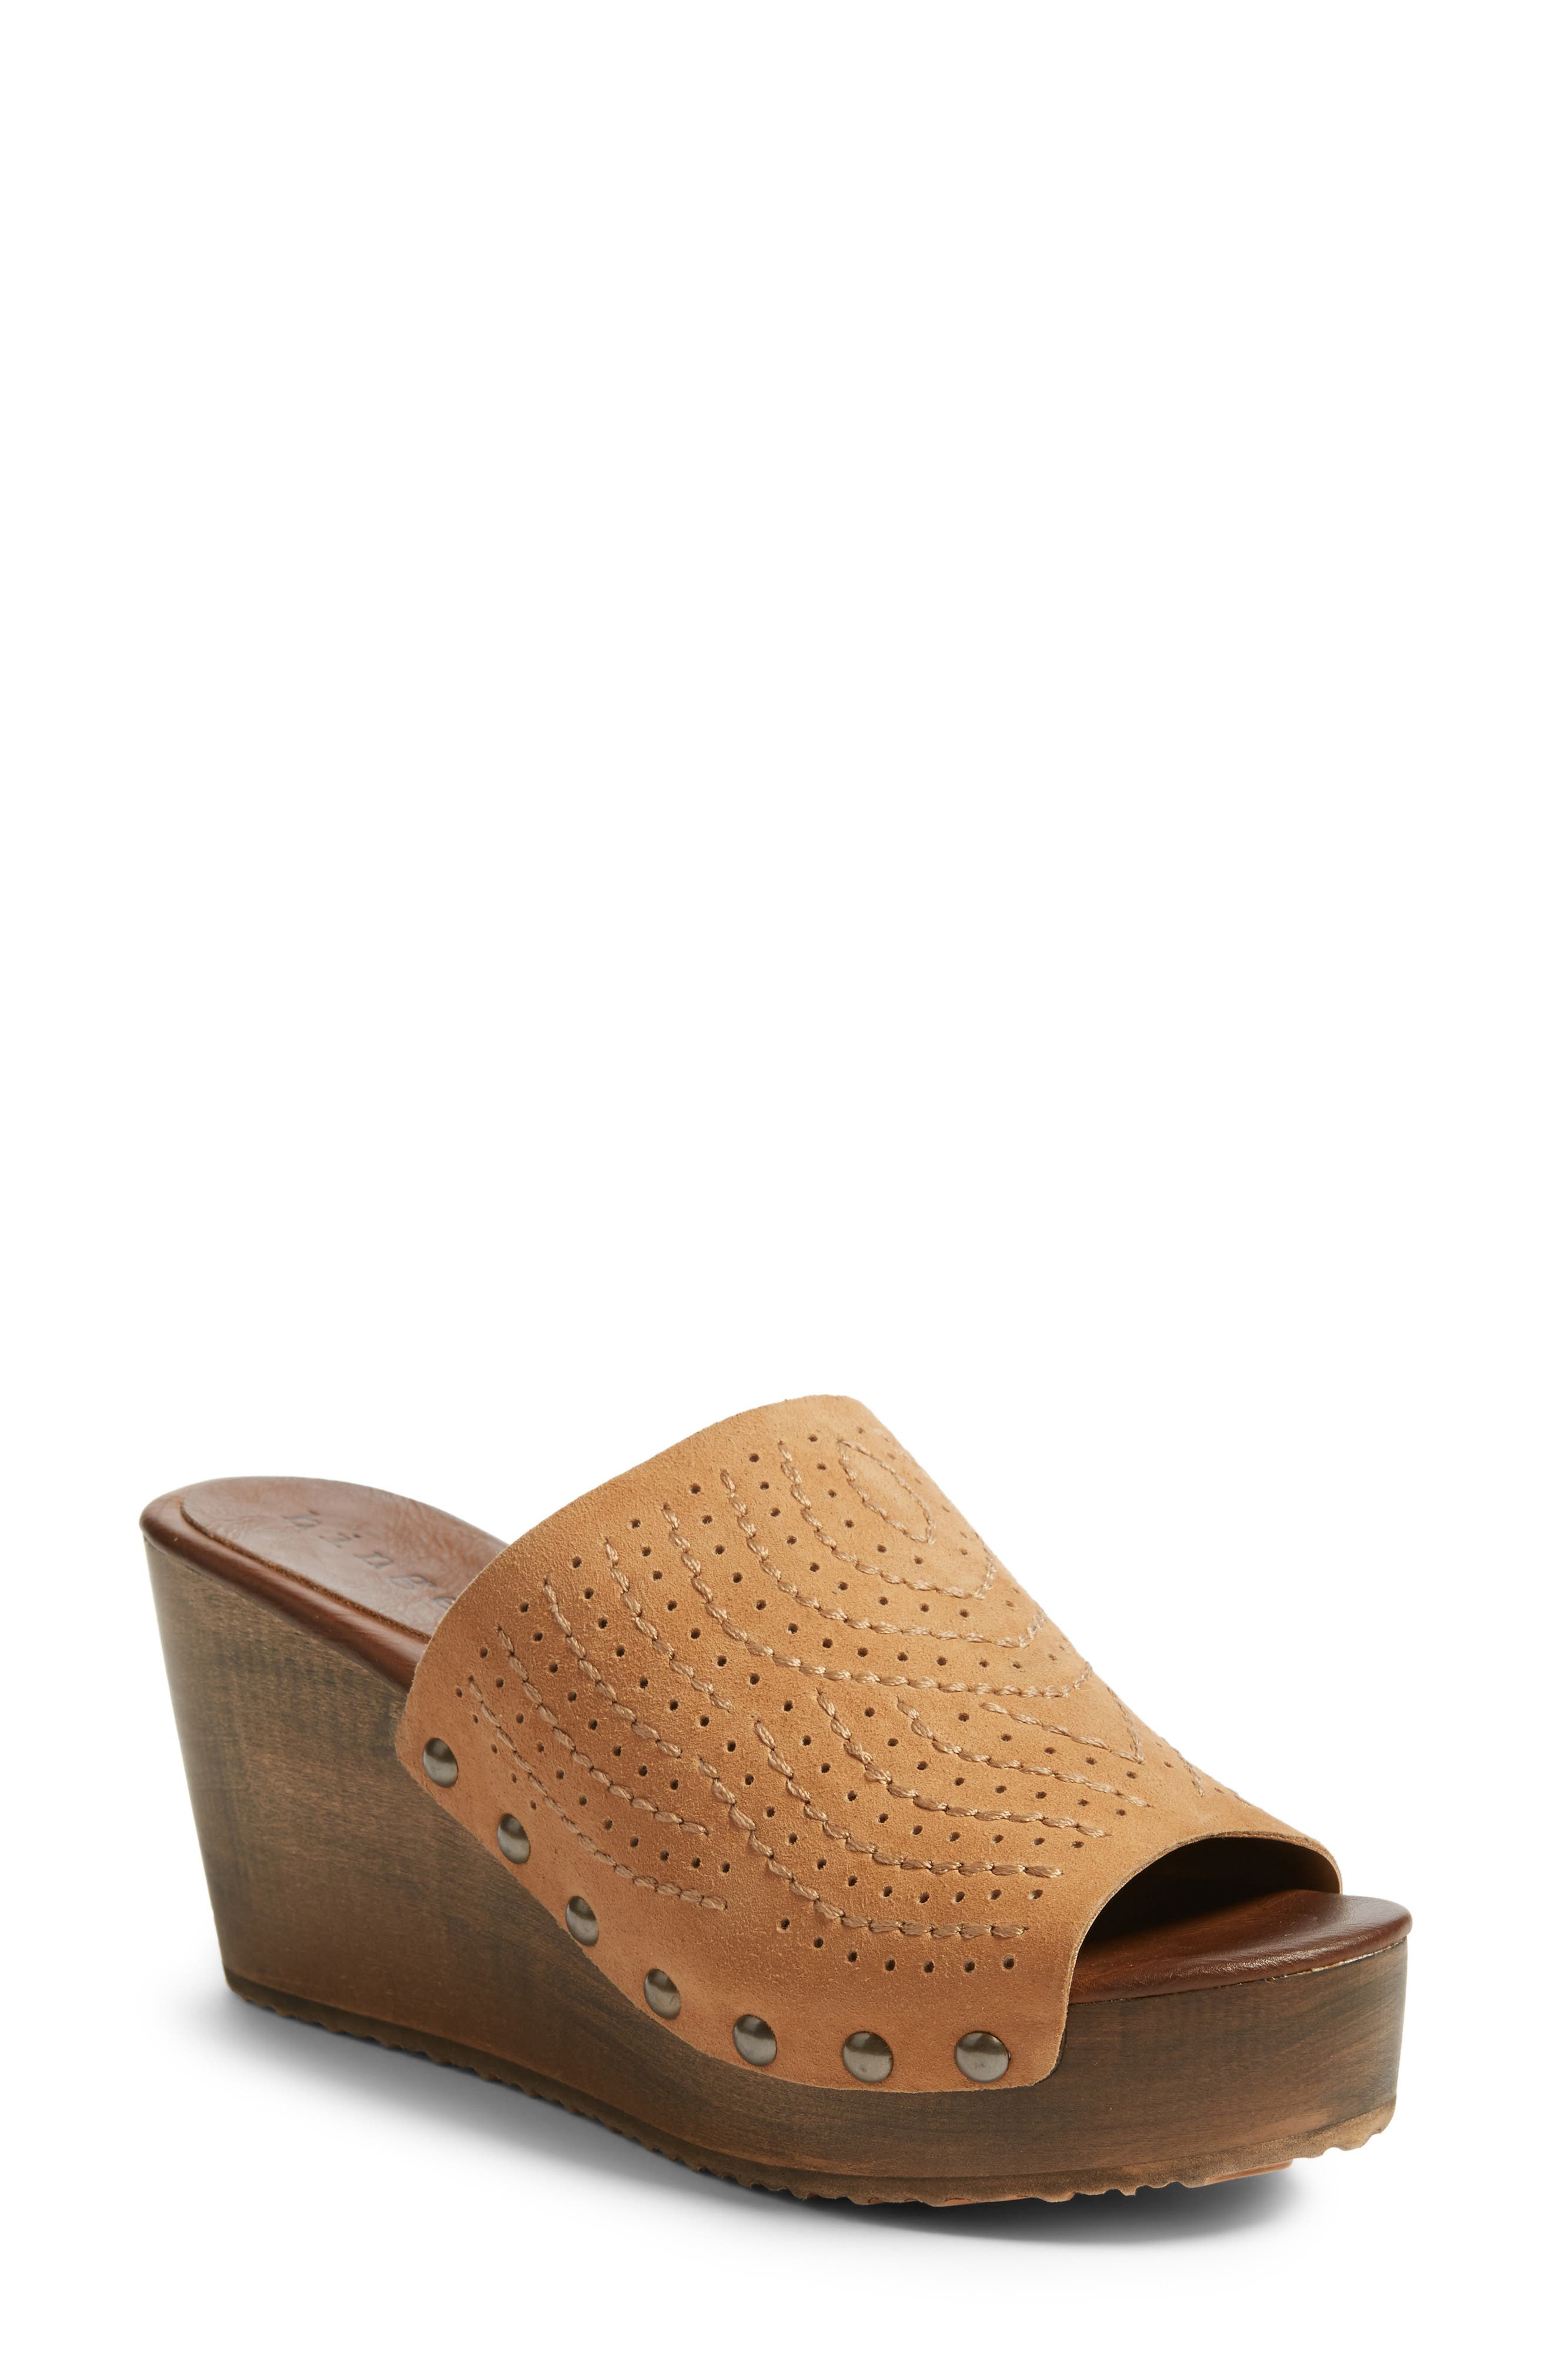 Hinge Agitha Platform Wedge Sandal (Women)